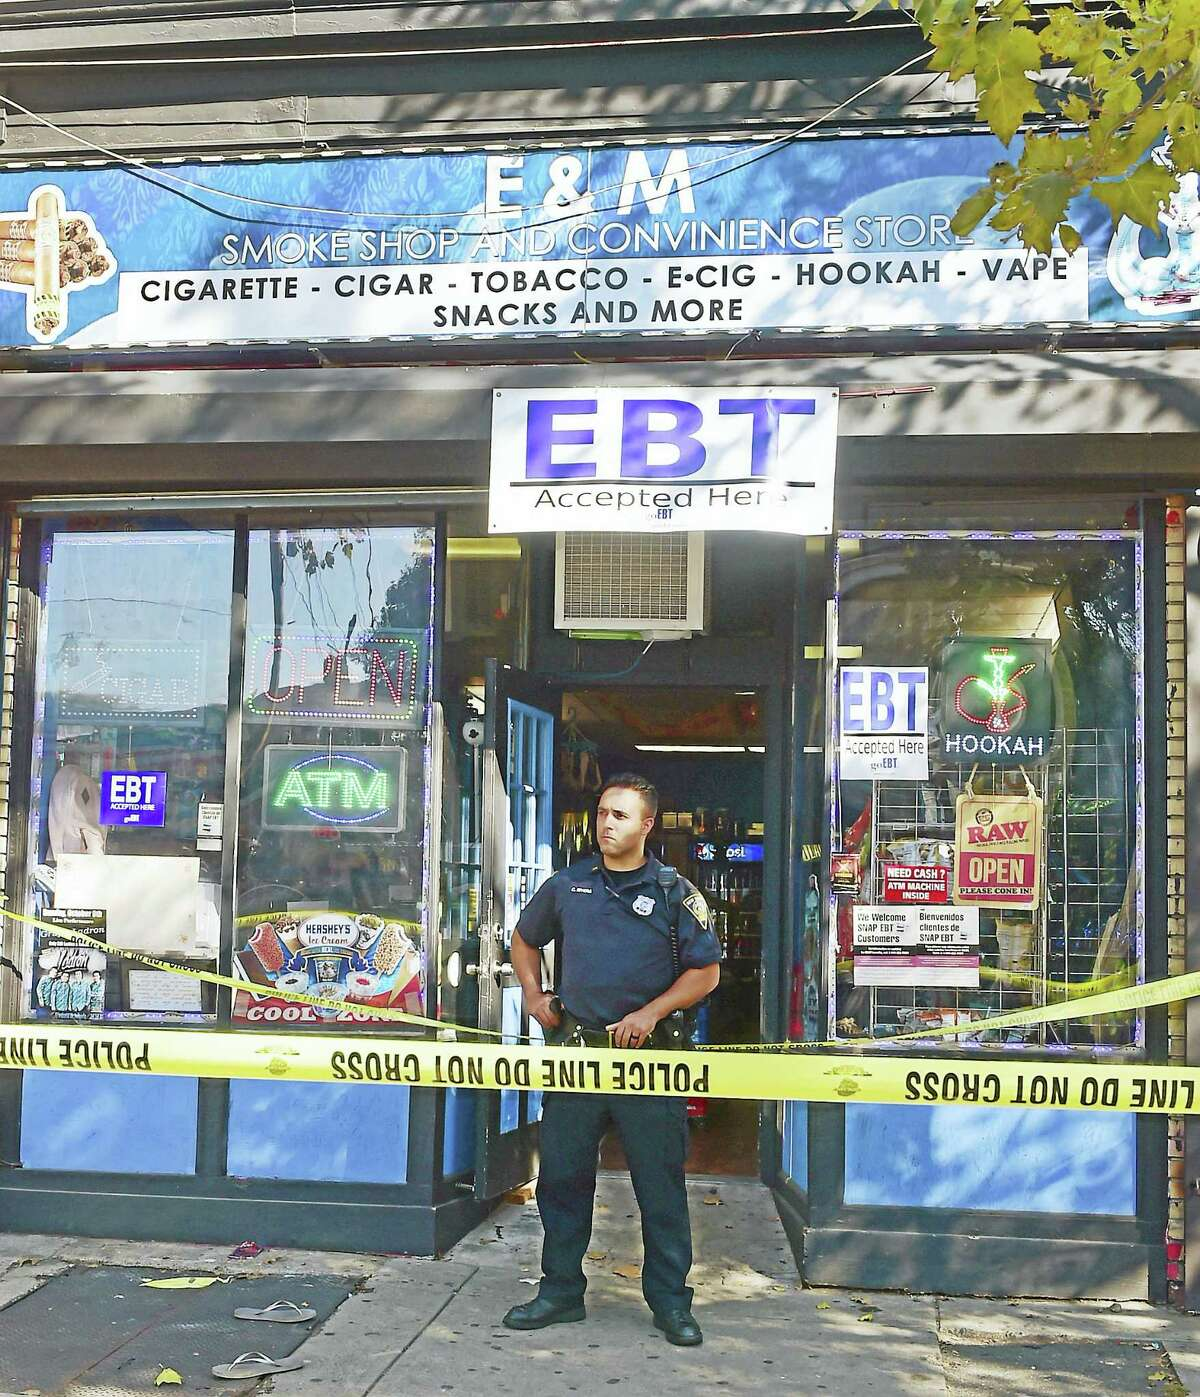 A New Haven police officer stands in front of the E&M Smoke Shop and Convenience Store at 545 Ferry St. in New Haven, where Muhanad Jawad, 21, was shot and killed Tuesday afternoon.